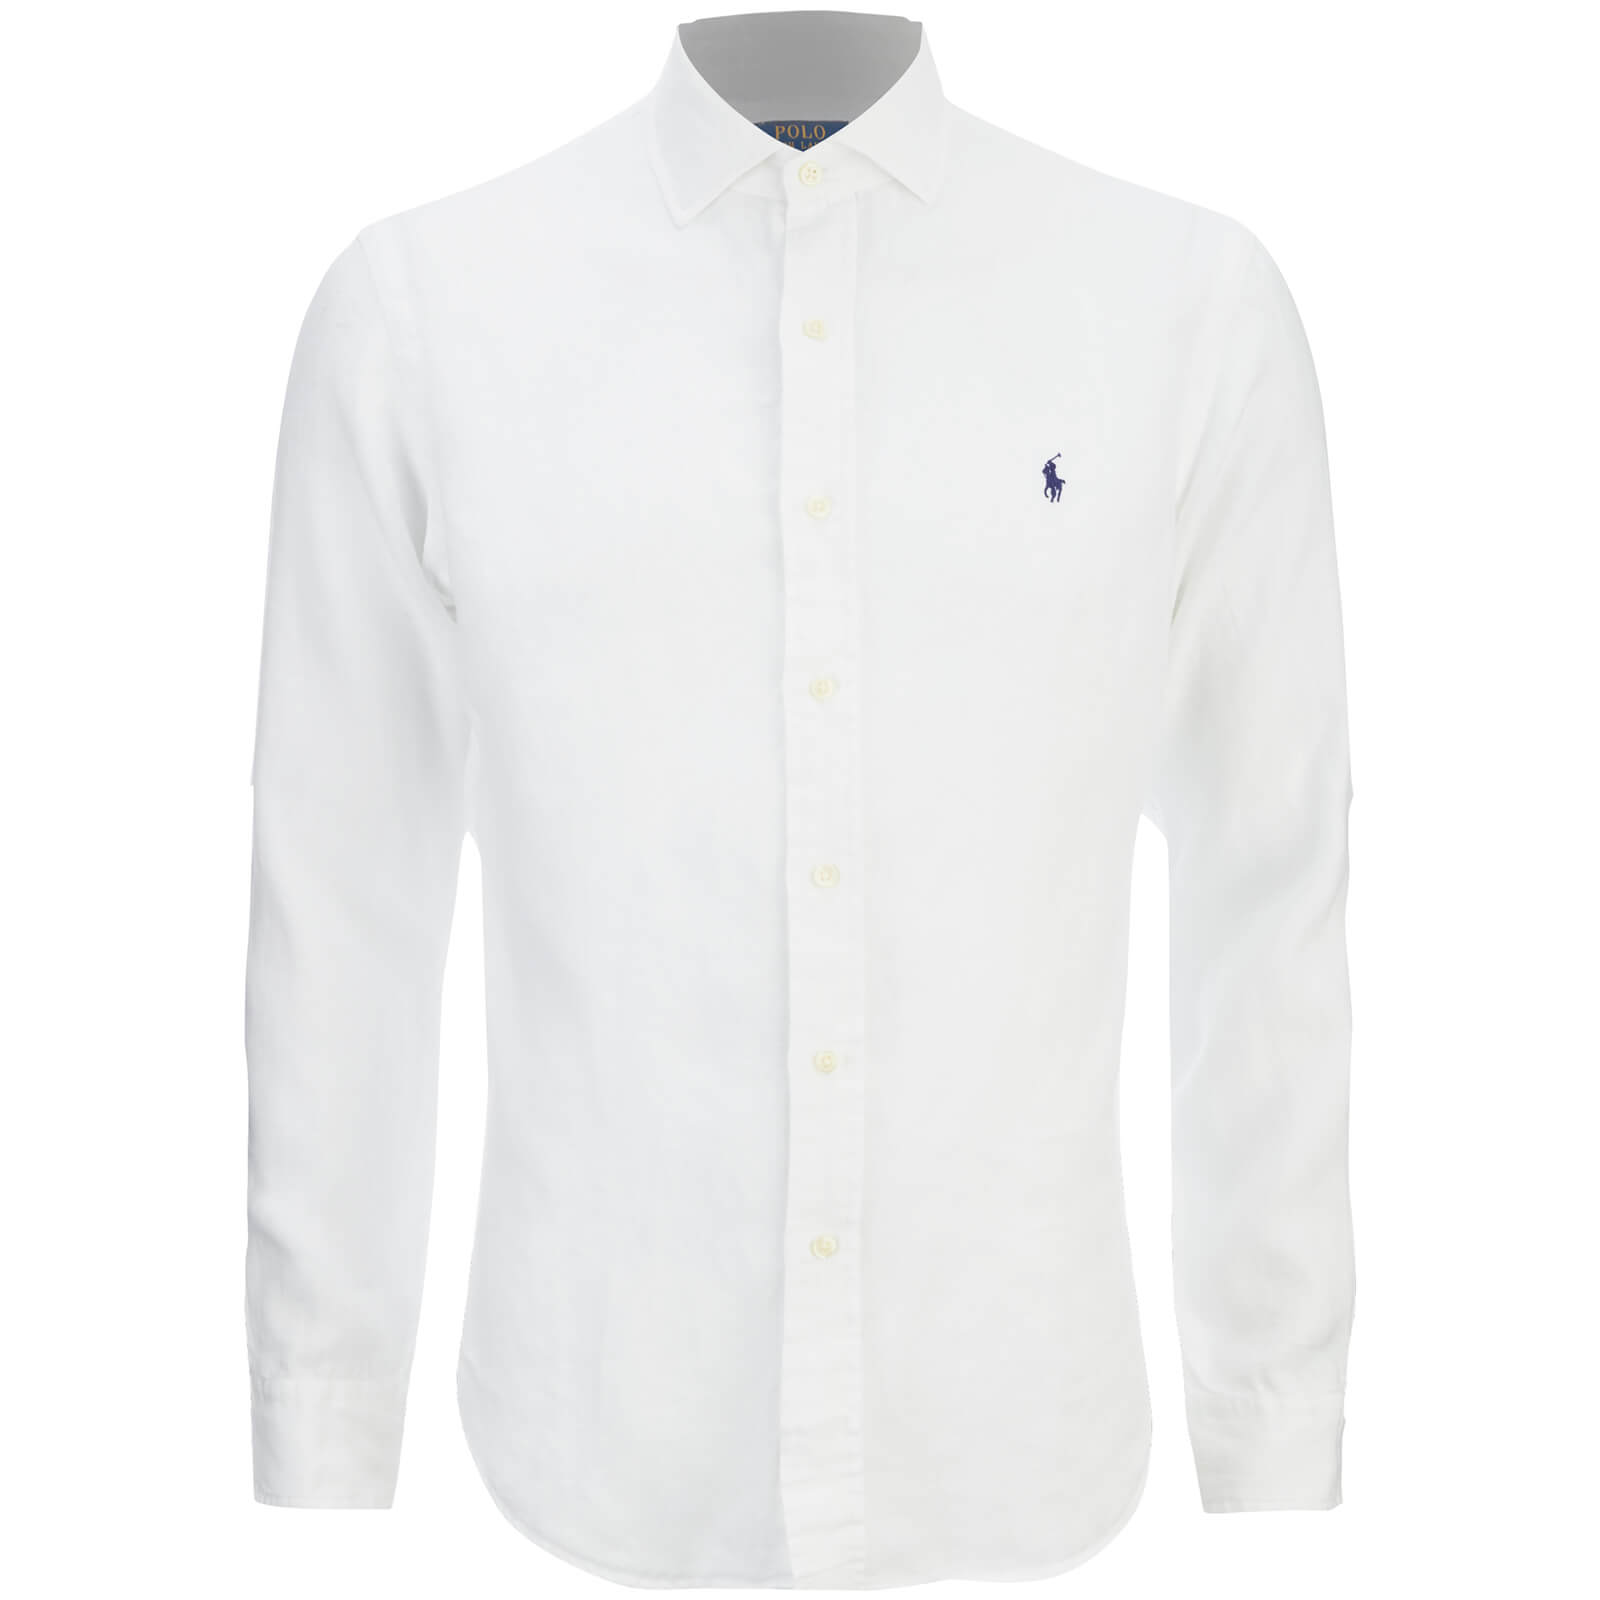 76eefdebb342e Polo Ralph Lauren Men s Slim Fit Long Sleeve Linen Shirt - White - Free UK  Delivery over £50